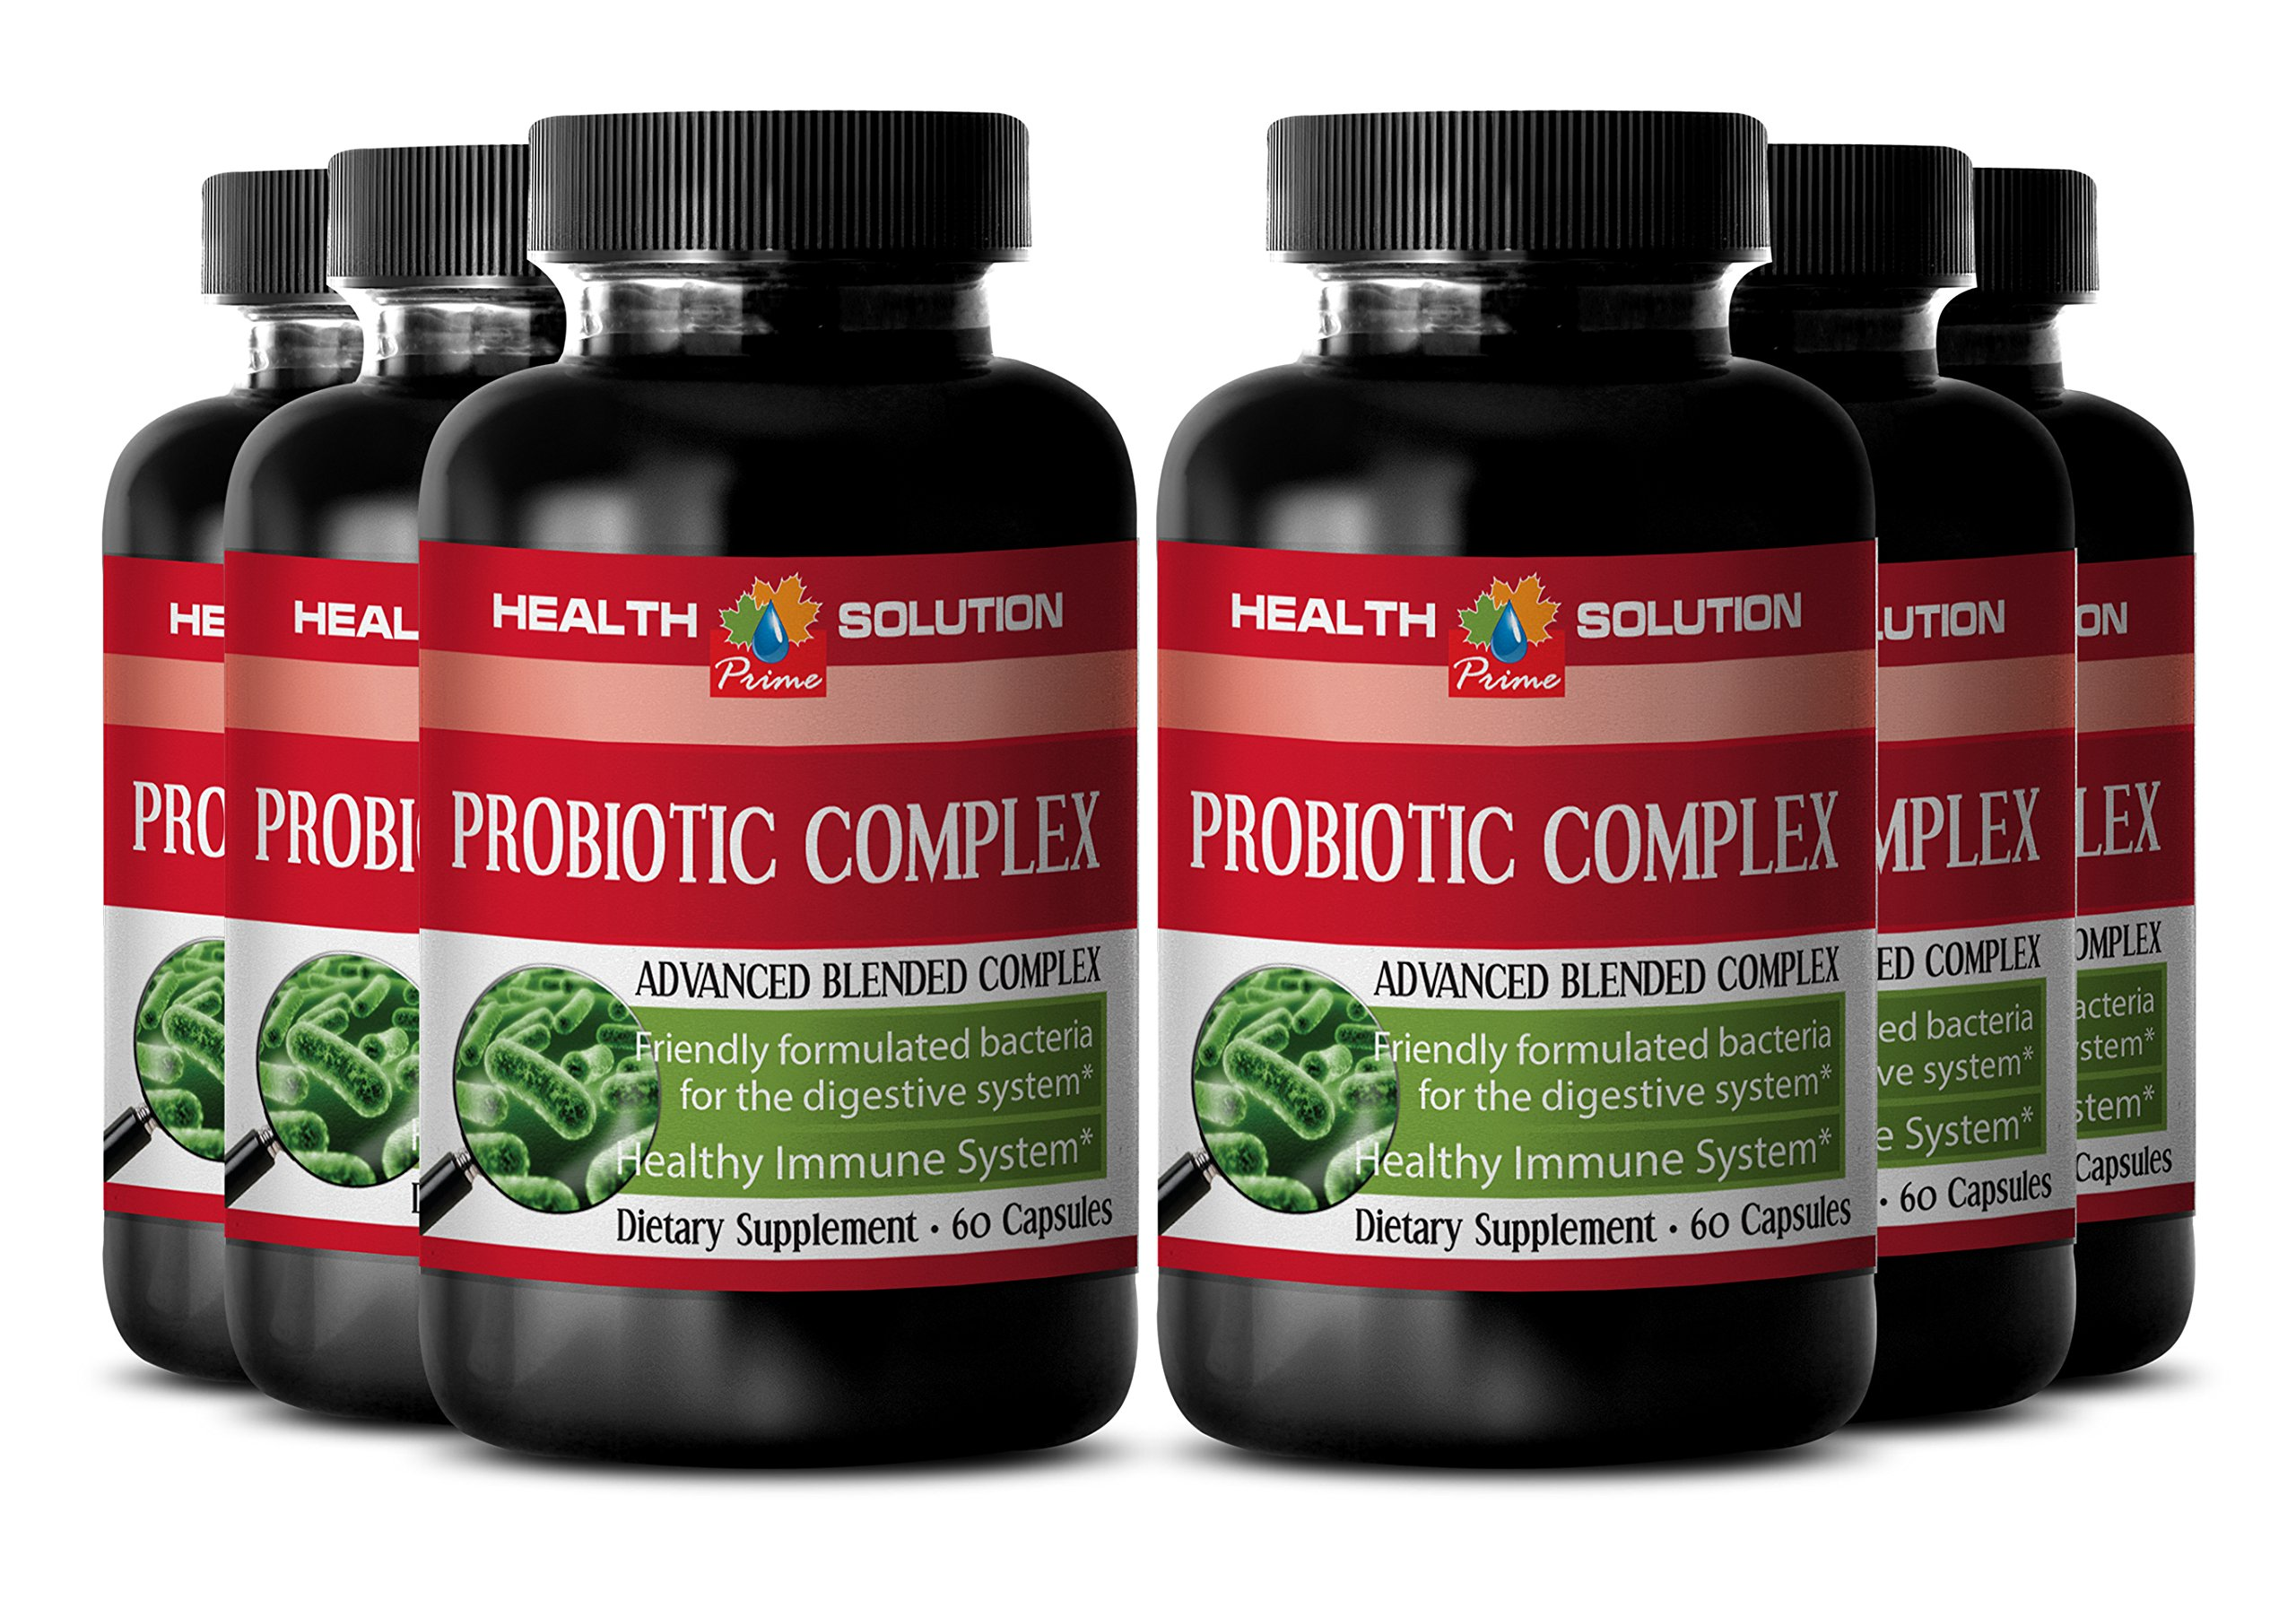 Probiotic immunity - PROBIOTIC COMPLEX 550MG - support digestion (6 Bottles) by Health Solution Prime